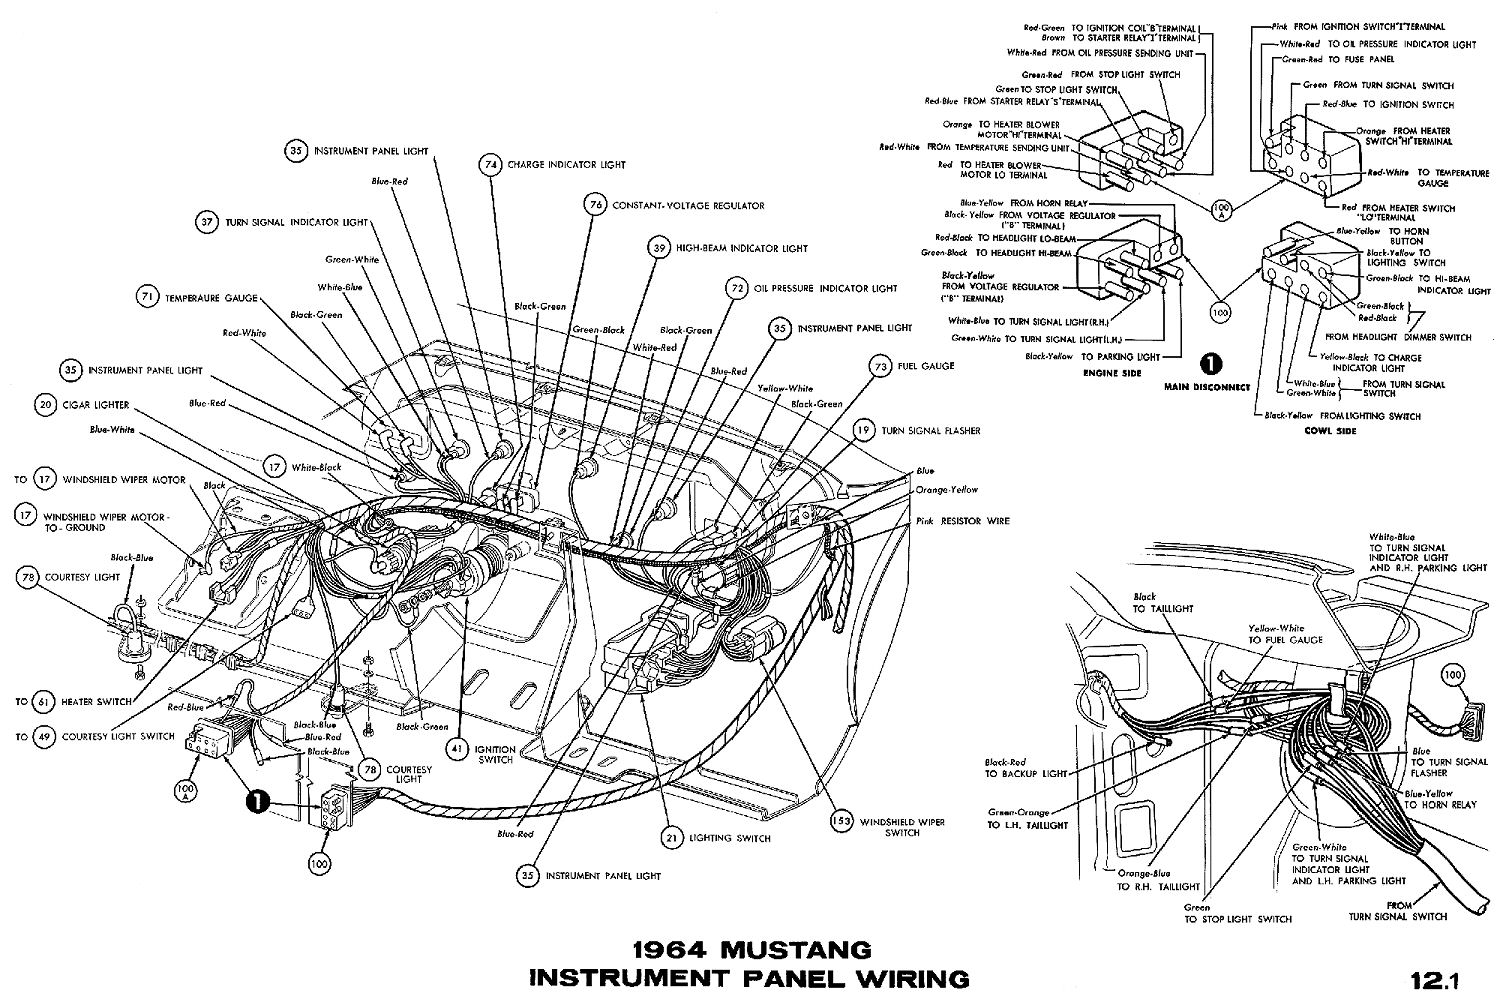 1964 Mustang Wiring Diagrams Average Joe Restoration Chevy Oil Sending Unit Diagram Instrument Cluster Connections Wiper Switch